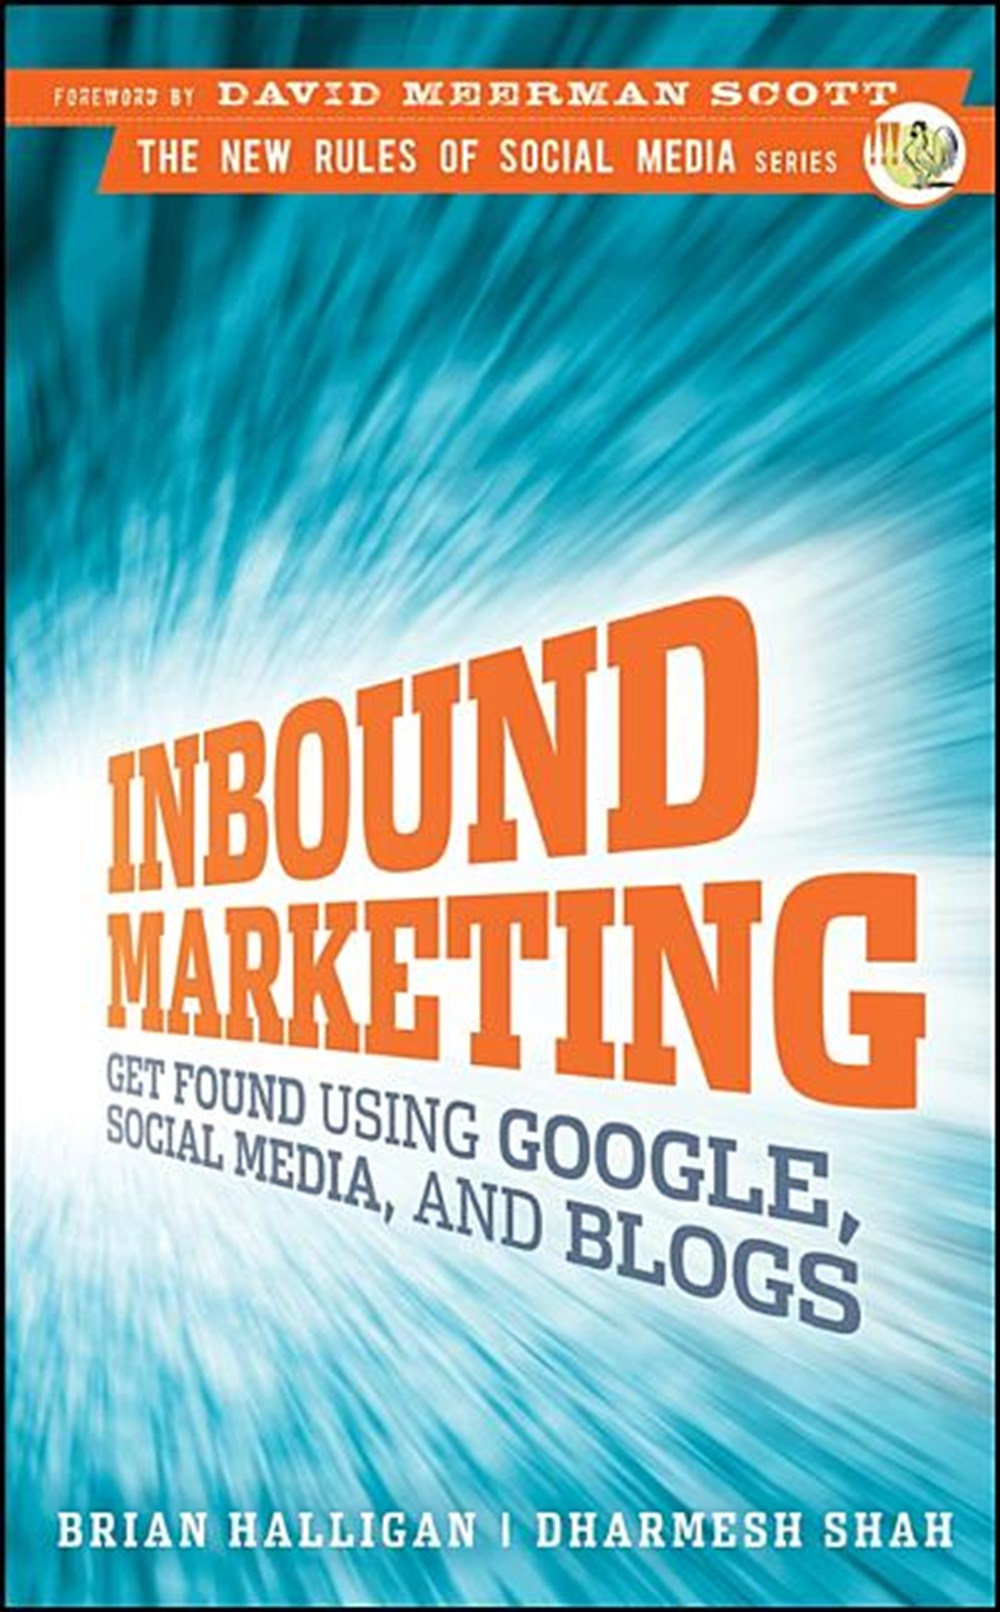 Inbound Marketing Get Found Using Google, Social Media, and Blogs